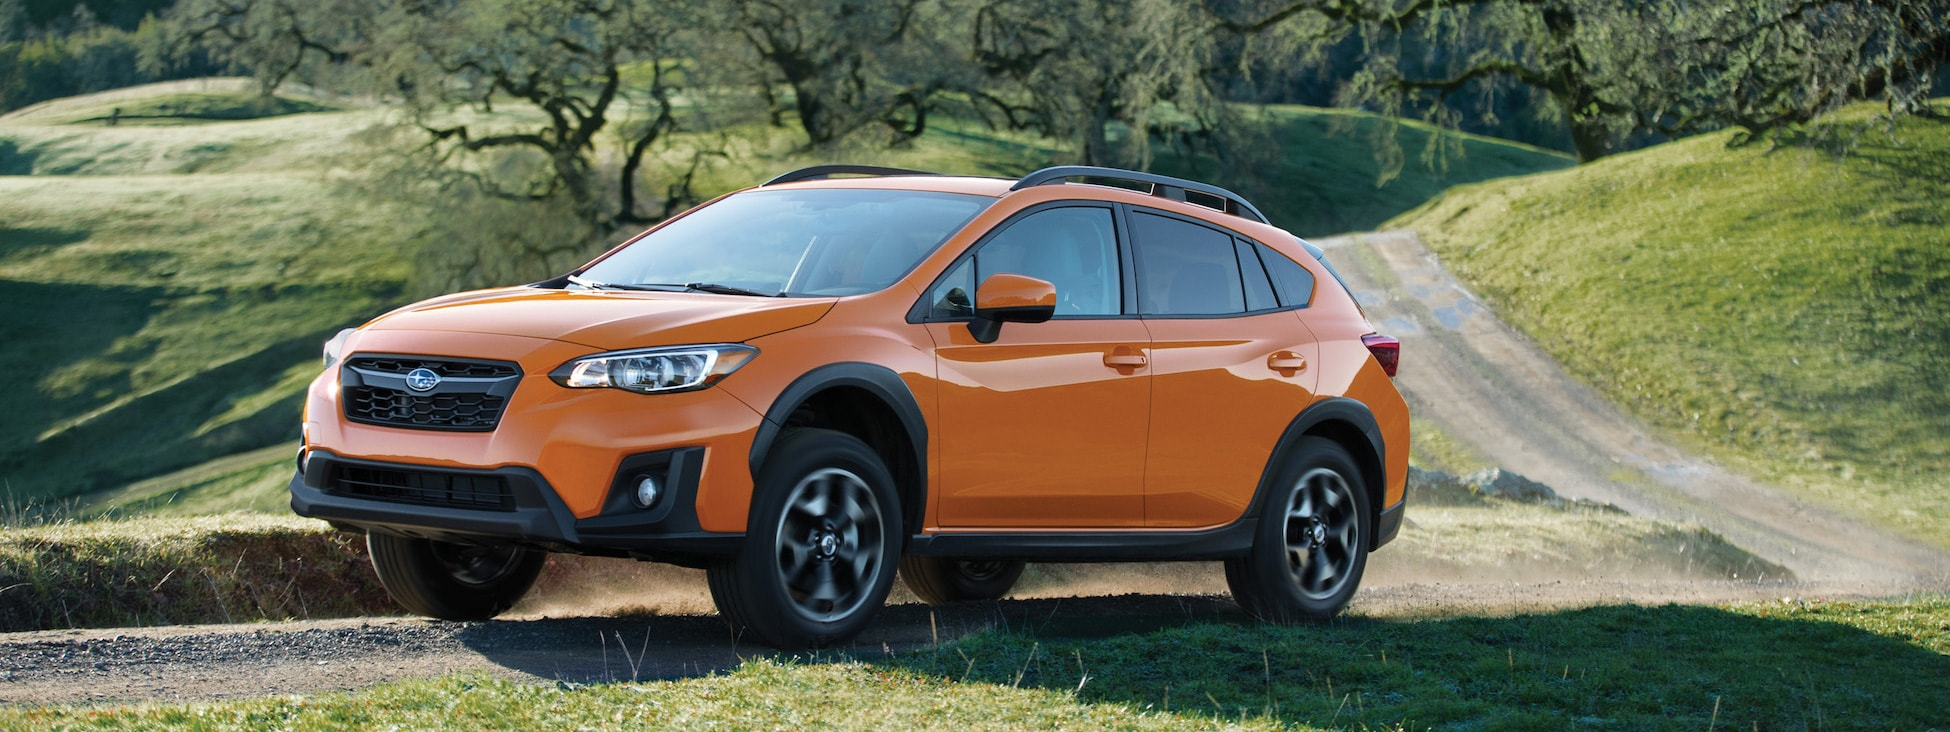 Brand New 2020 Subaru Crosstrek